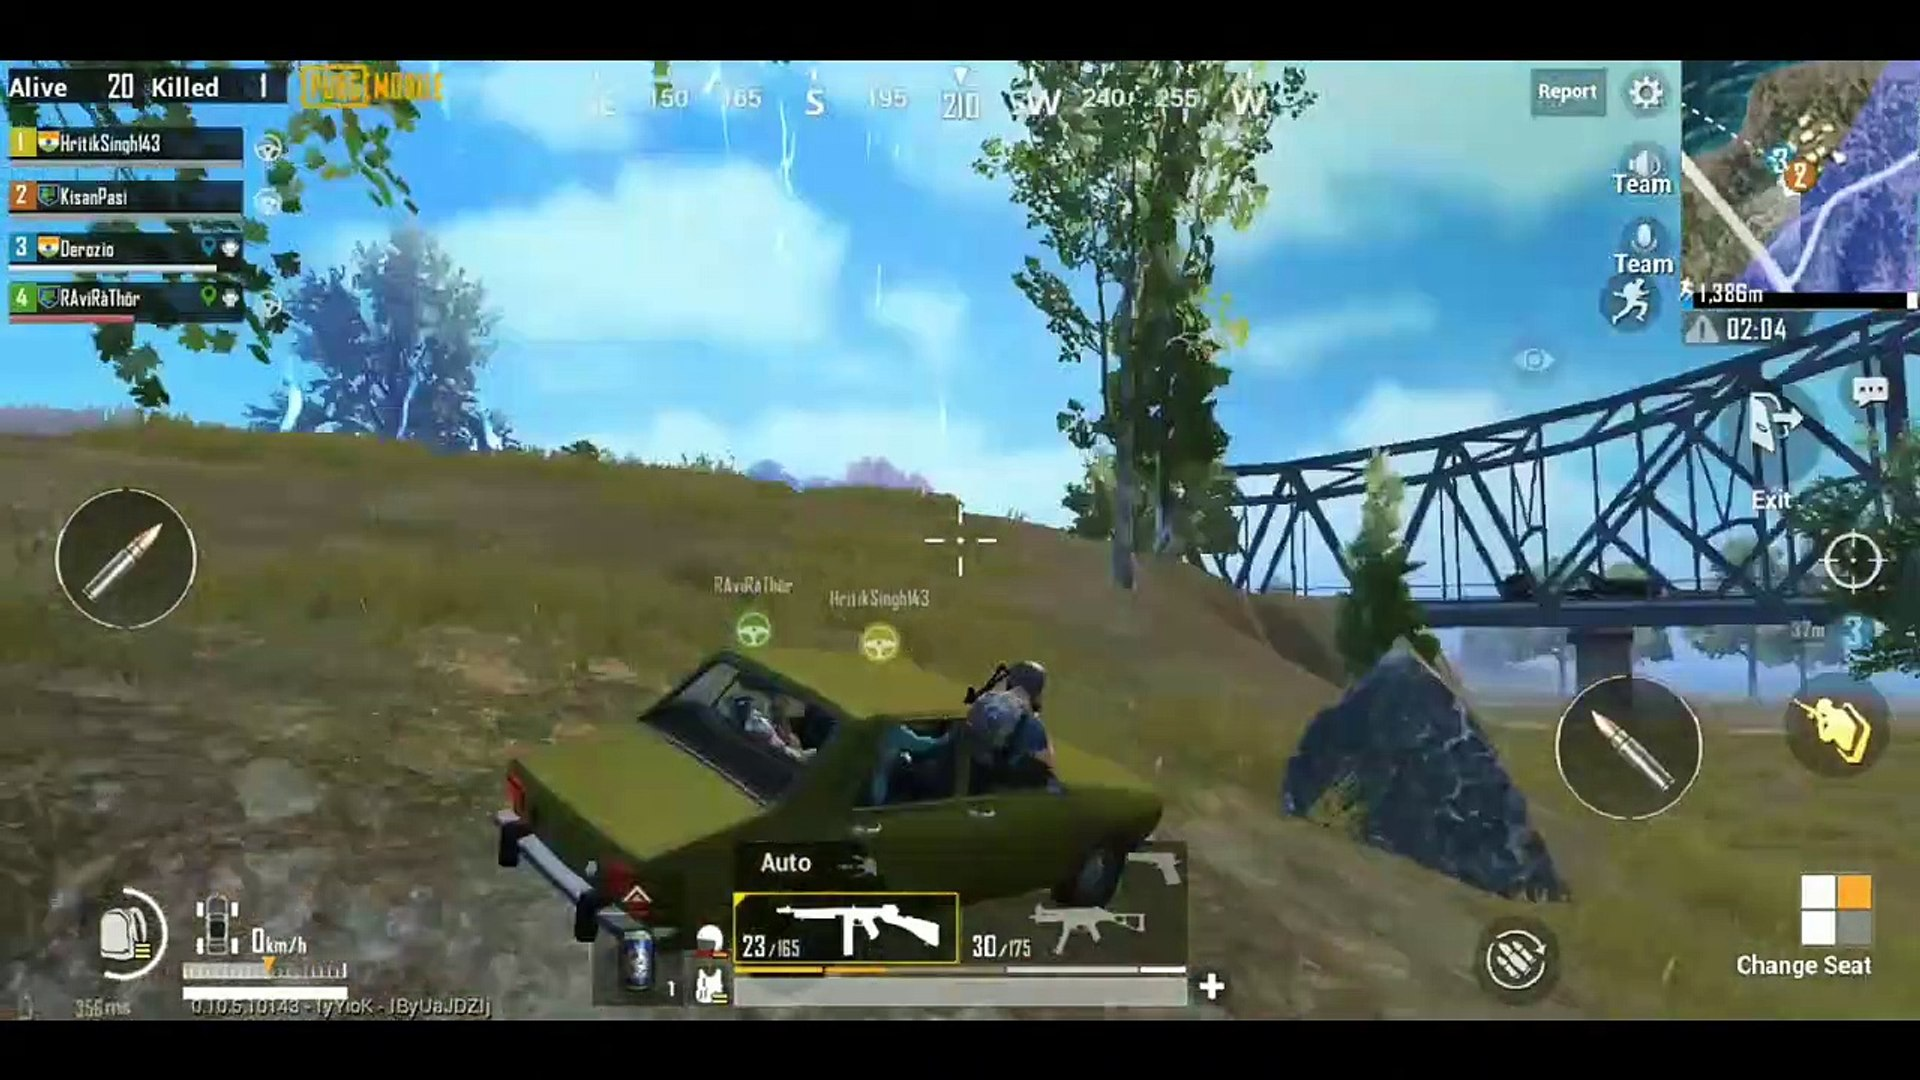 Second Time Chicken Dinner in PUBG Mobile 2019 - PUBG Mobile Trick